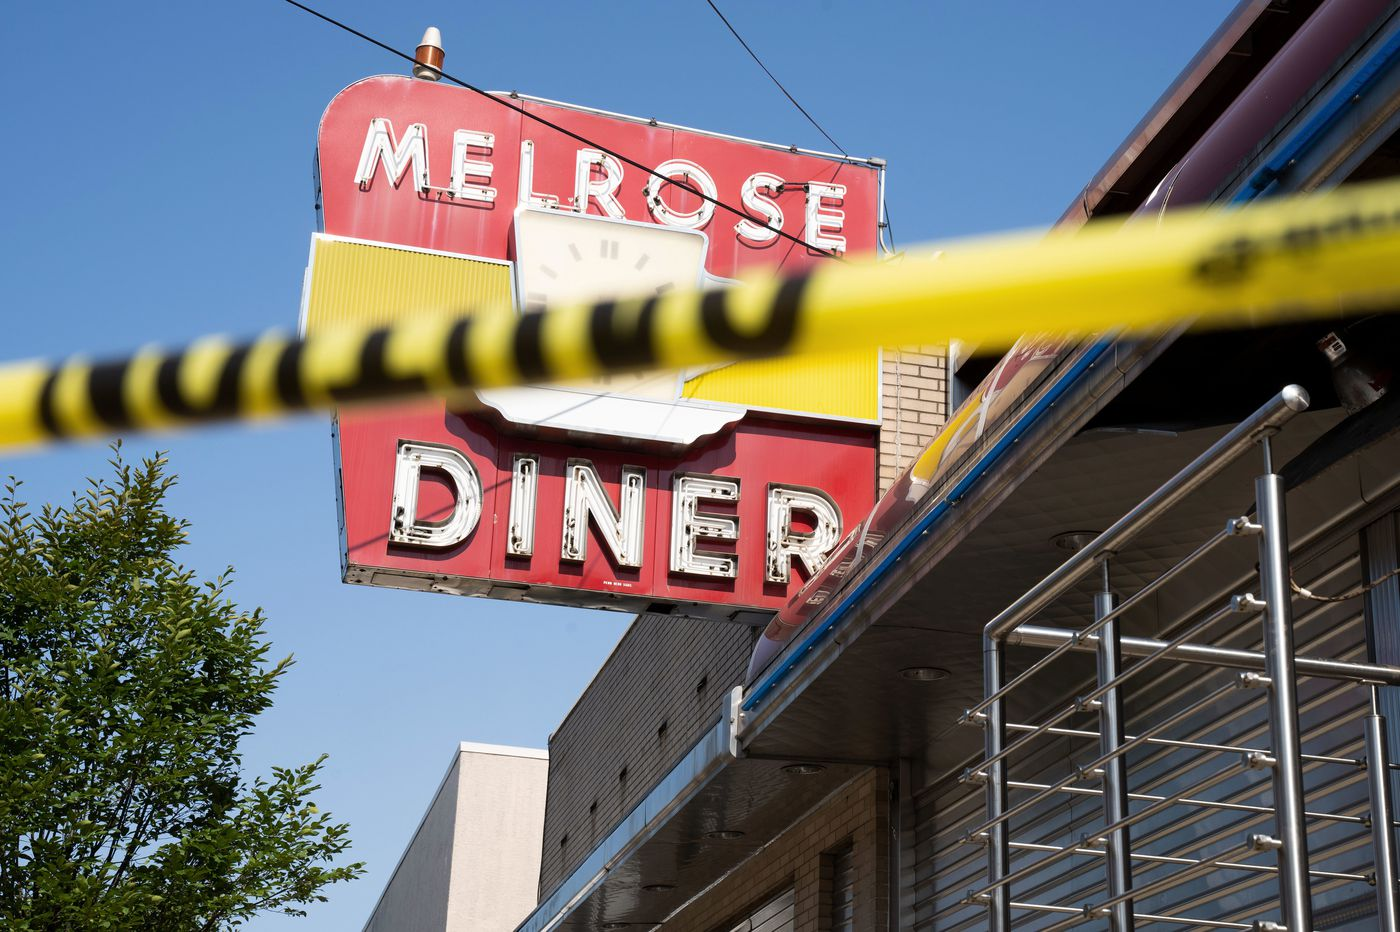 Melrose Diner to reopen 6 weeks after fire, with a 'surprise'